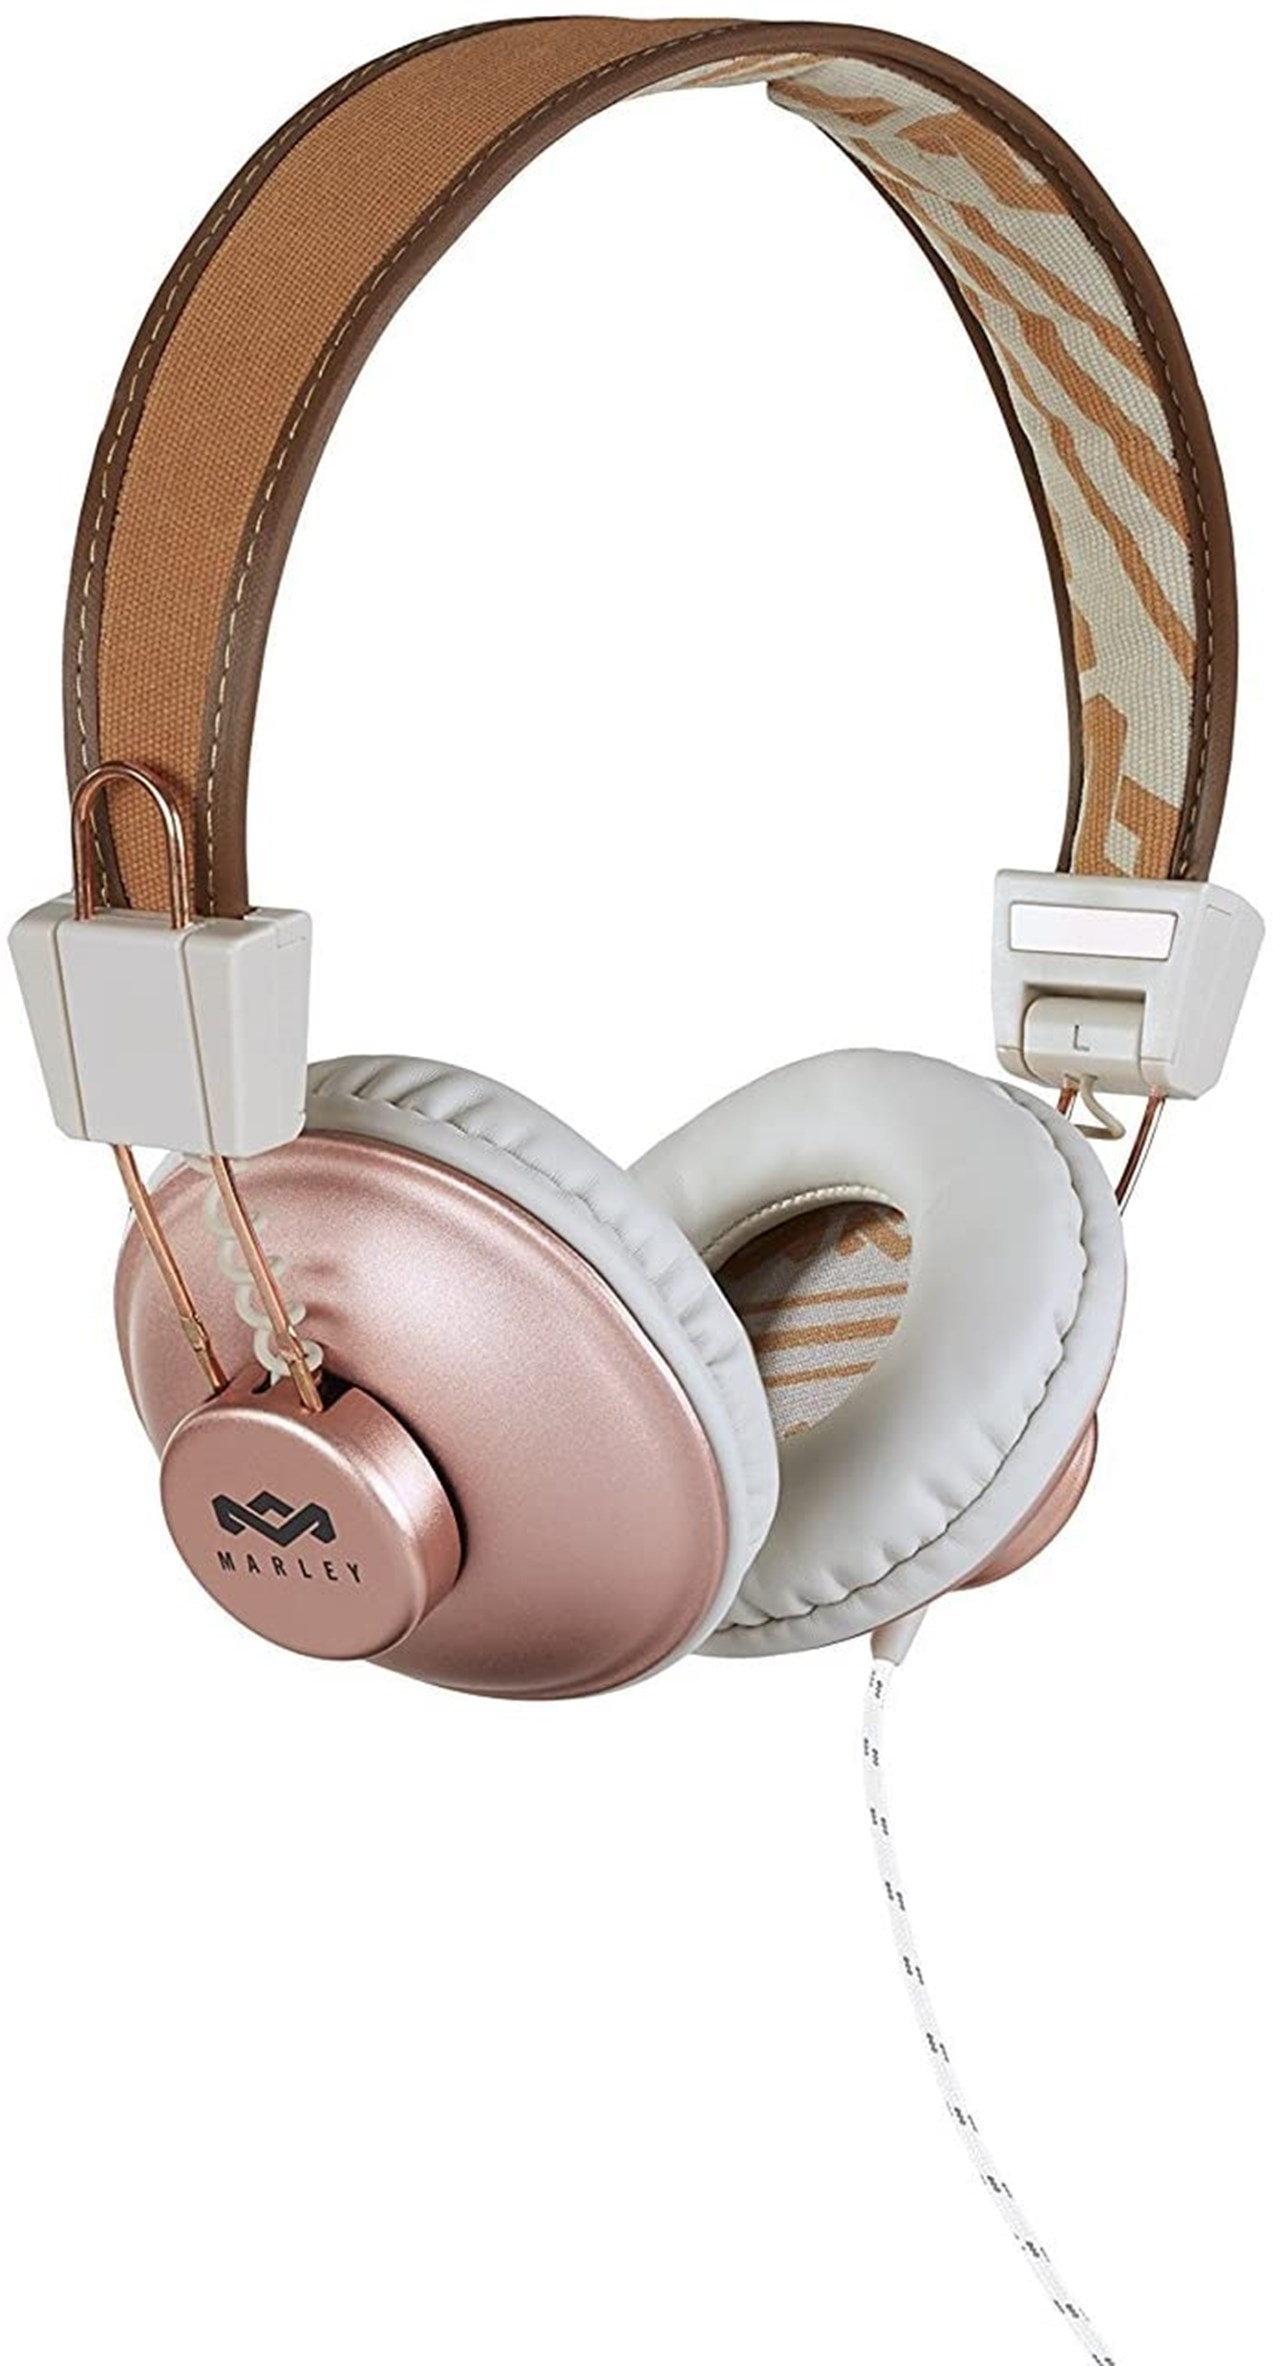 House Of Marley Positive Vibration Copper Headphones W/Mic (hmv exclusive) - 1